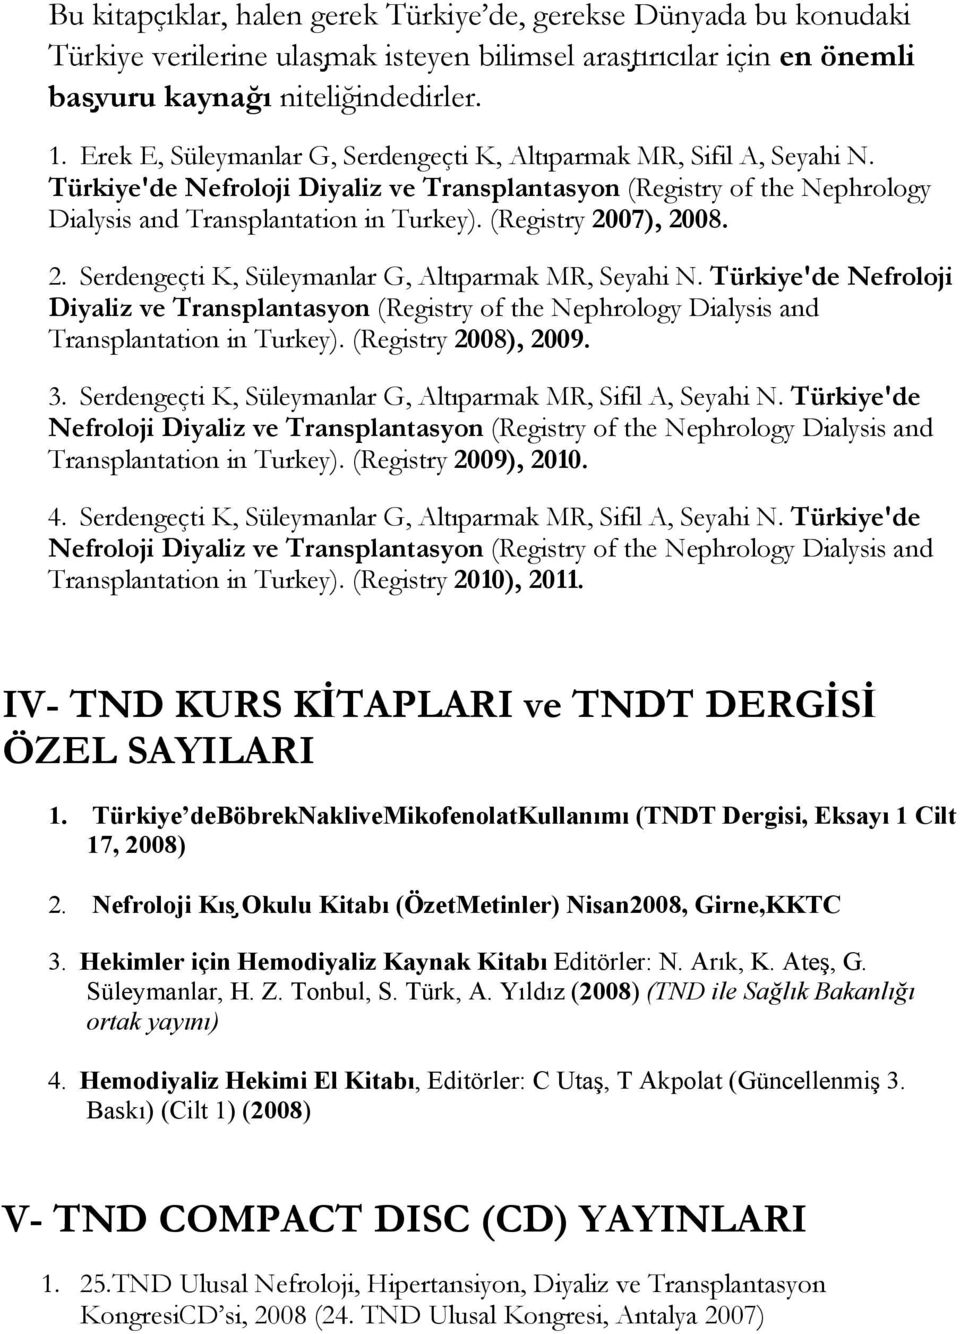 (Registry 2007), 2008. 2. Serdengeçti K, Süleymanlar G, Altıparmak MR, Seyahi N. Türkiye'de Nefroloji Diyaliz ve Transplantasyon (Registry of the Nephrology Dialysis and Transplantation in Turkey).